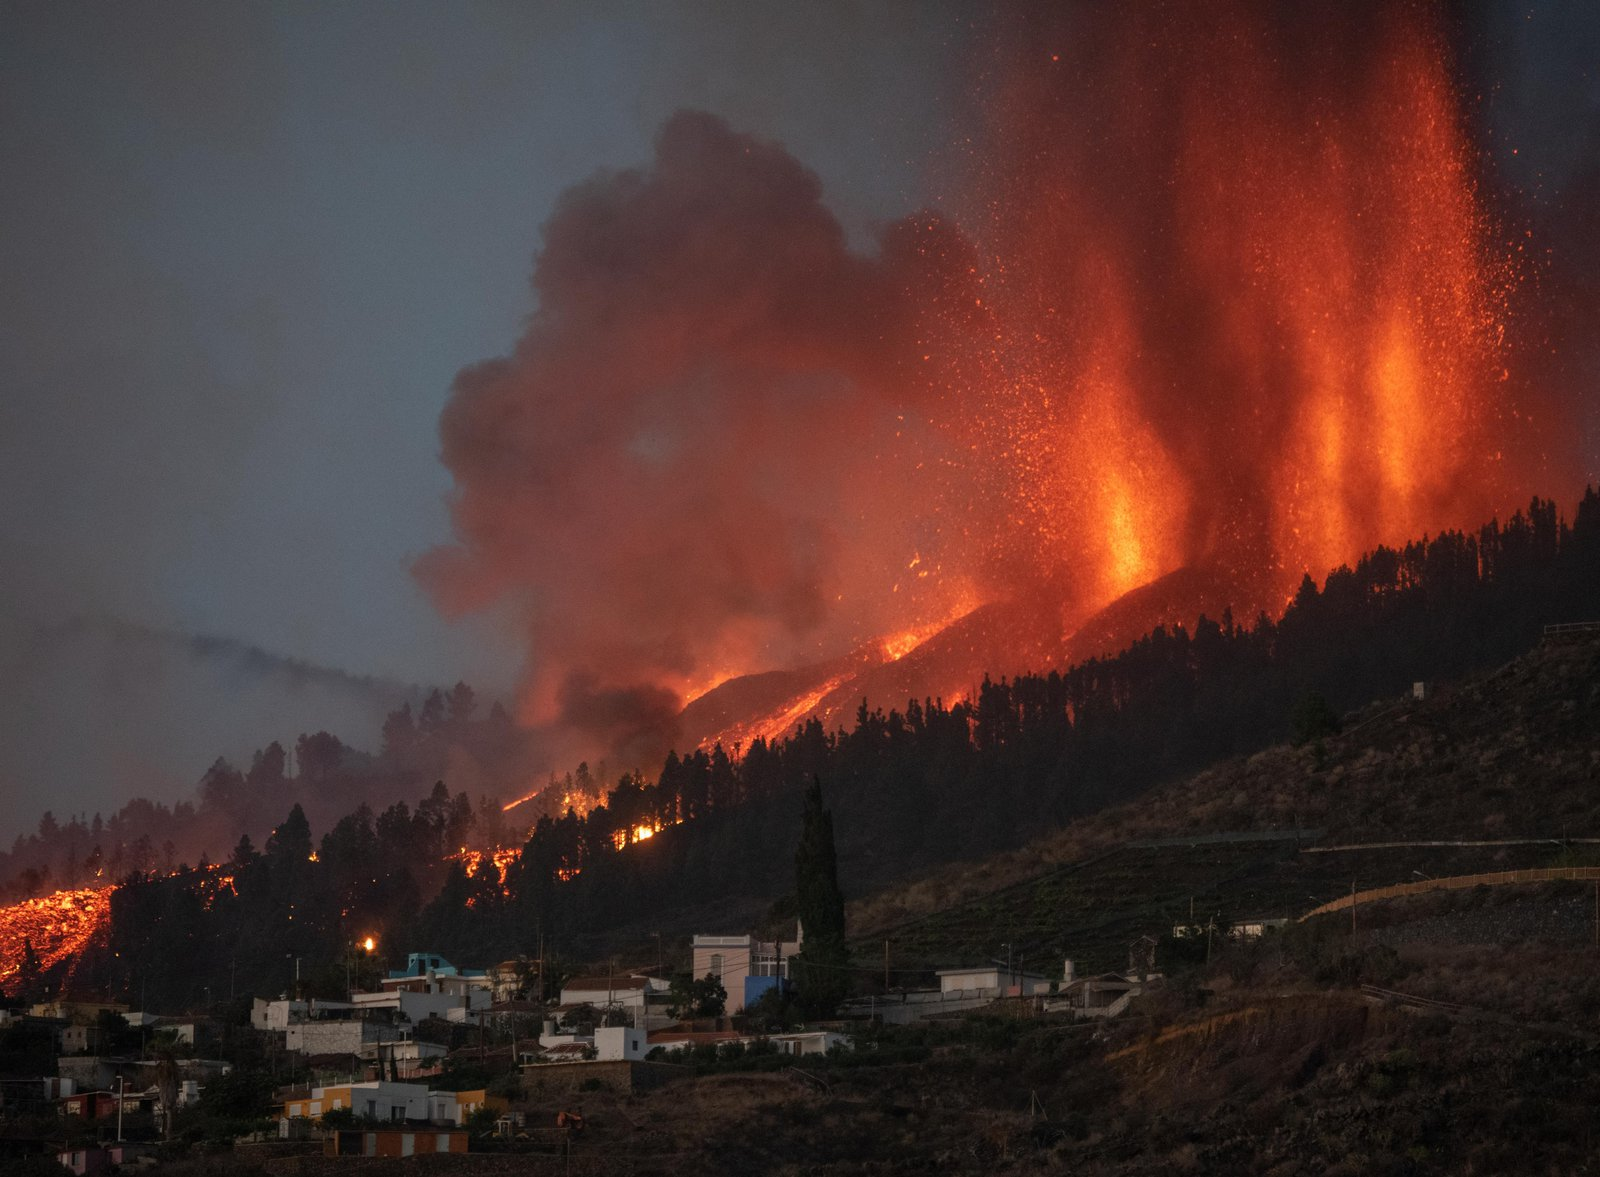 ...Eruption sends lava flowing to residential buildings